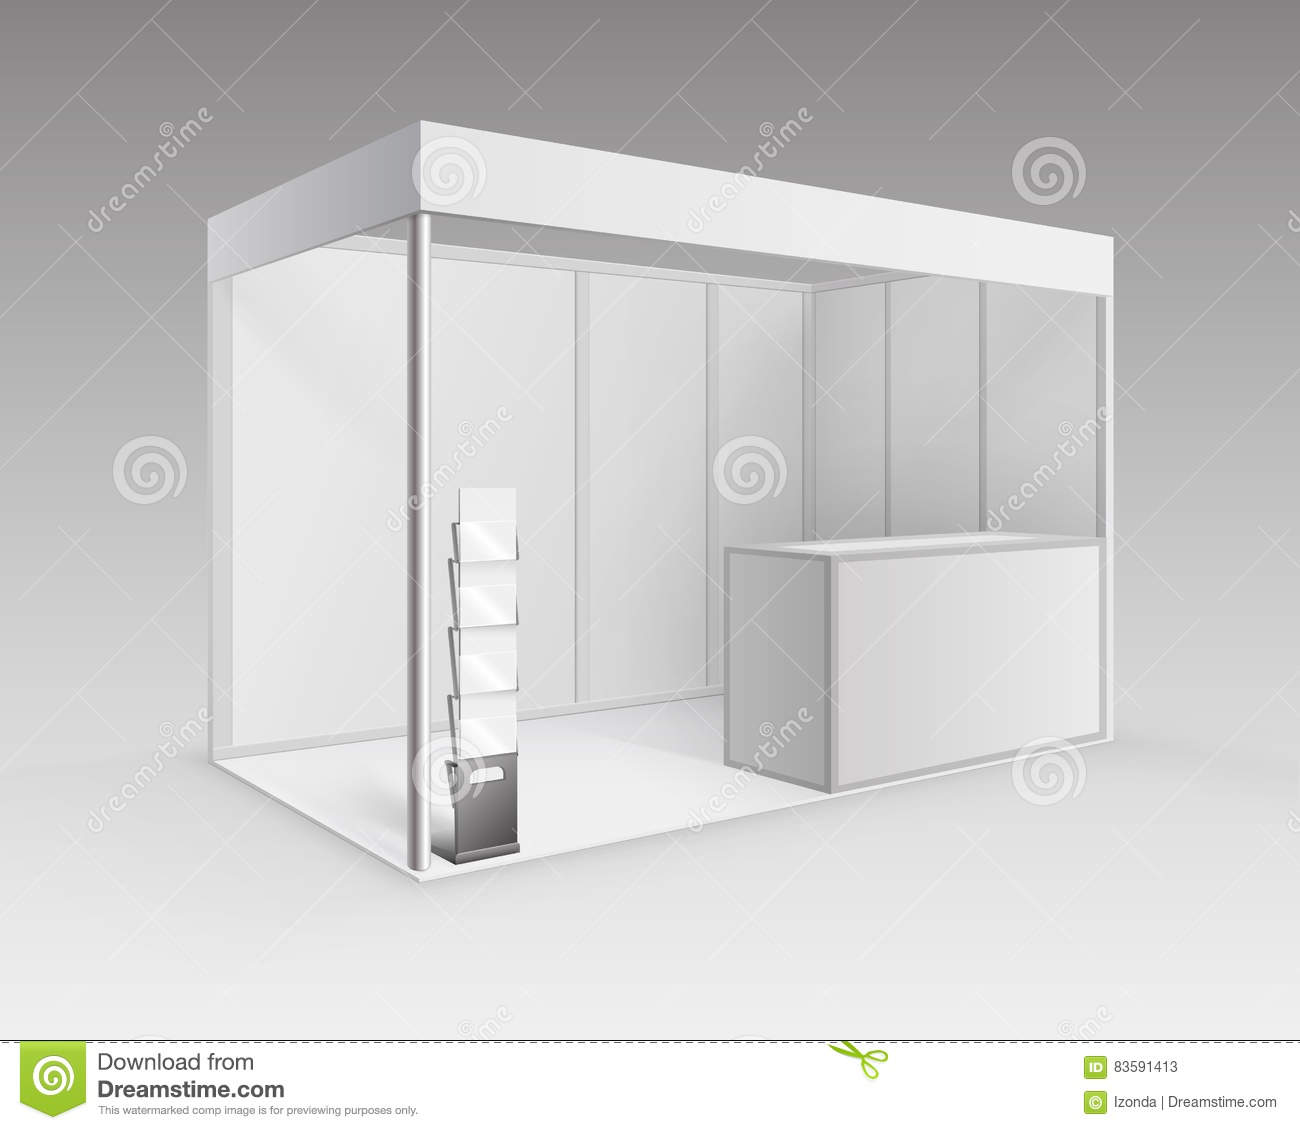 Exhibition Stand Information : White exhibition stand with brochure holder stock vector